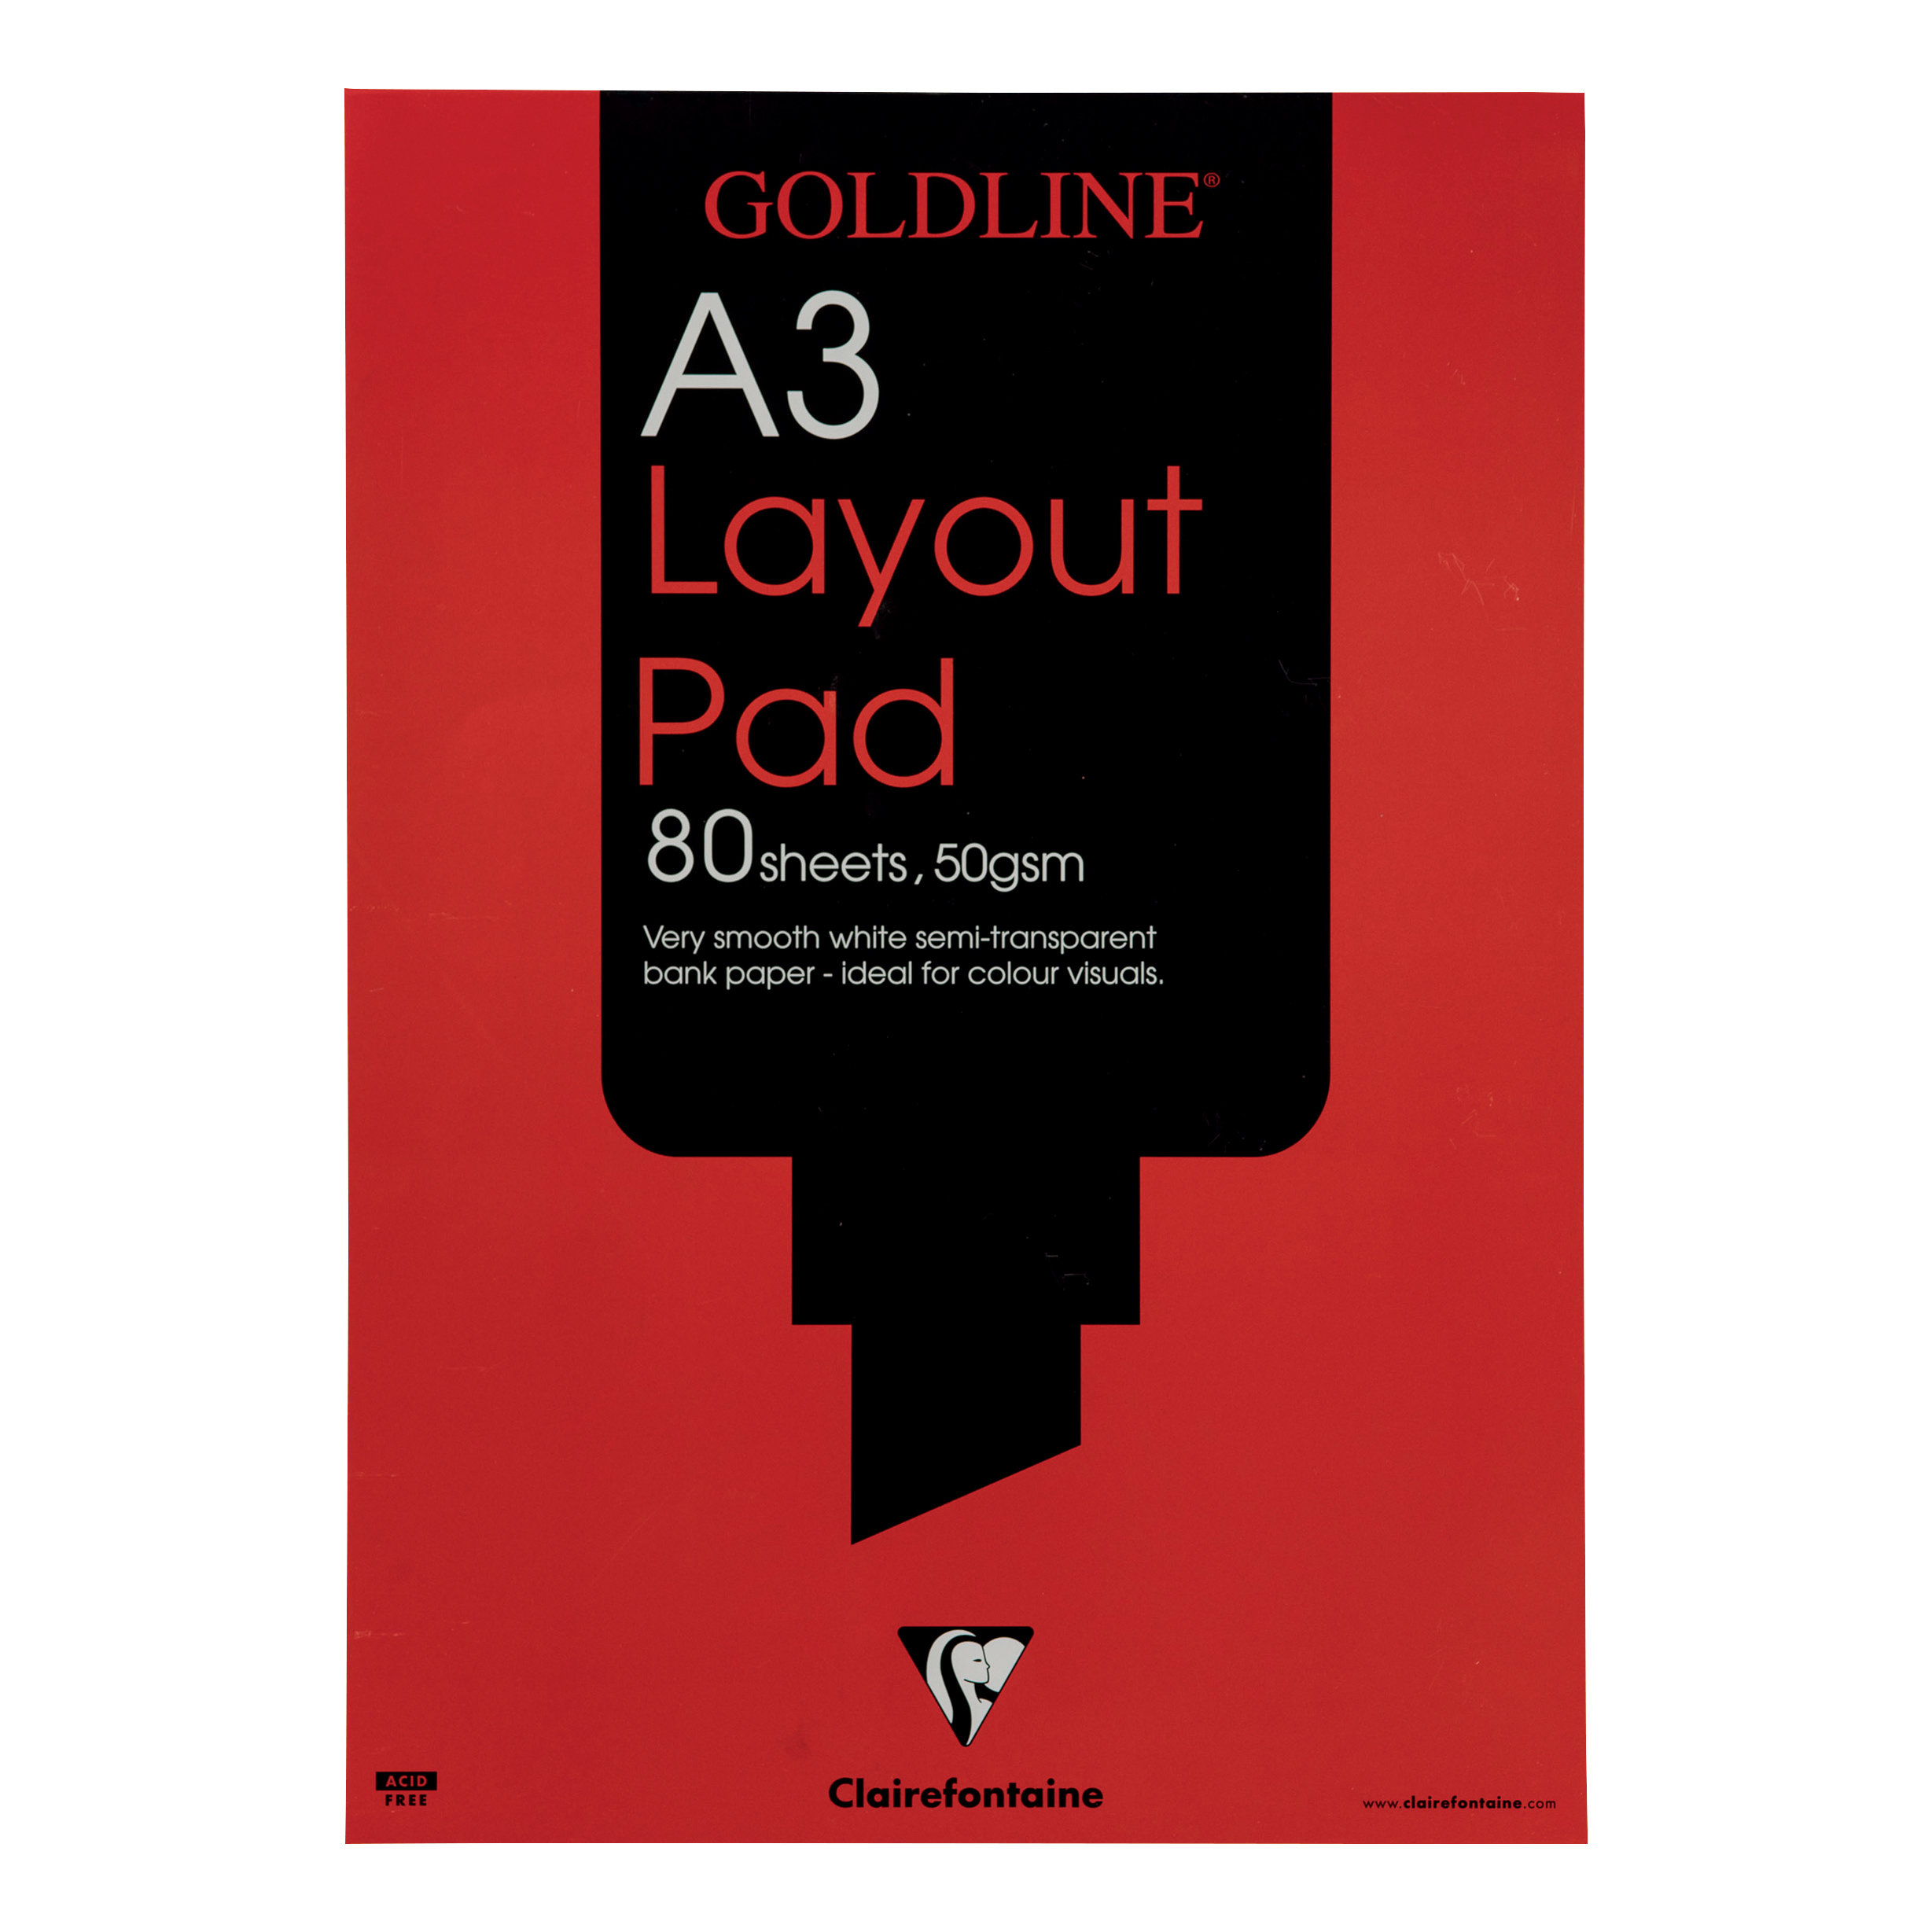 Goldline Layout Pad 50gsm Acid-free Paper 80 Sheets A3 White Ref GPL1A3Z Pack 5